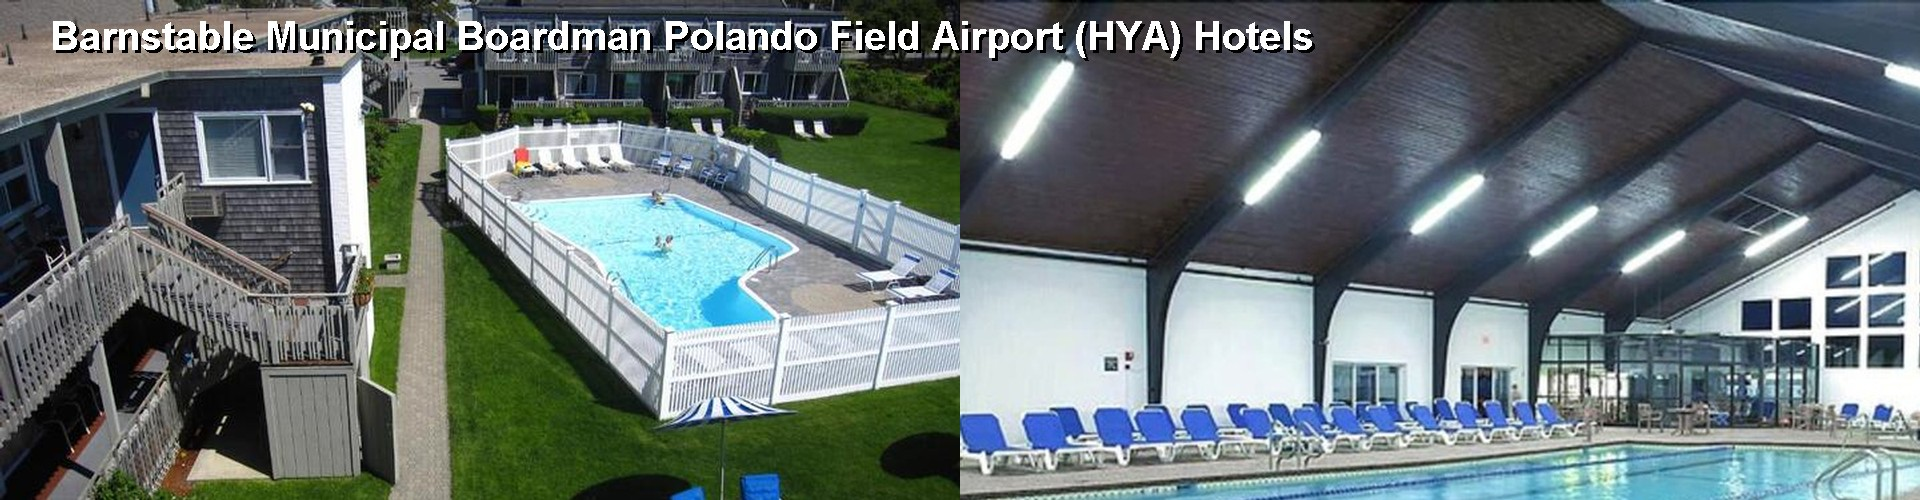 4 Best Hotels near Barnstable Municipal Boardman Polando Field Airport (HYA)